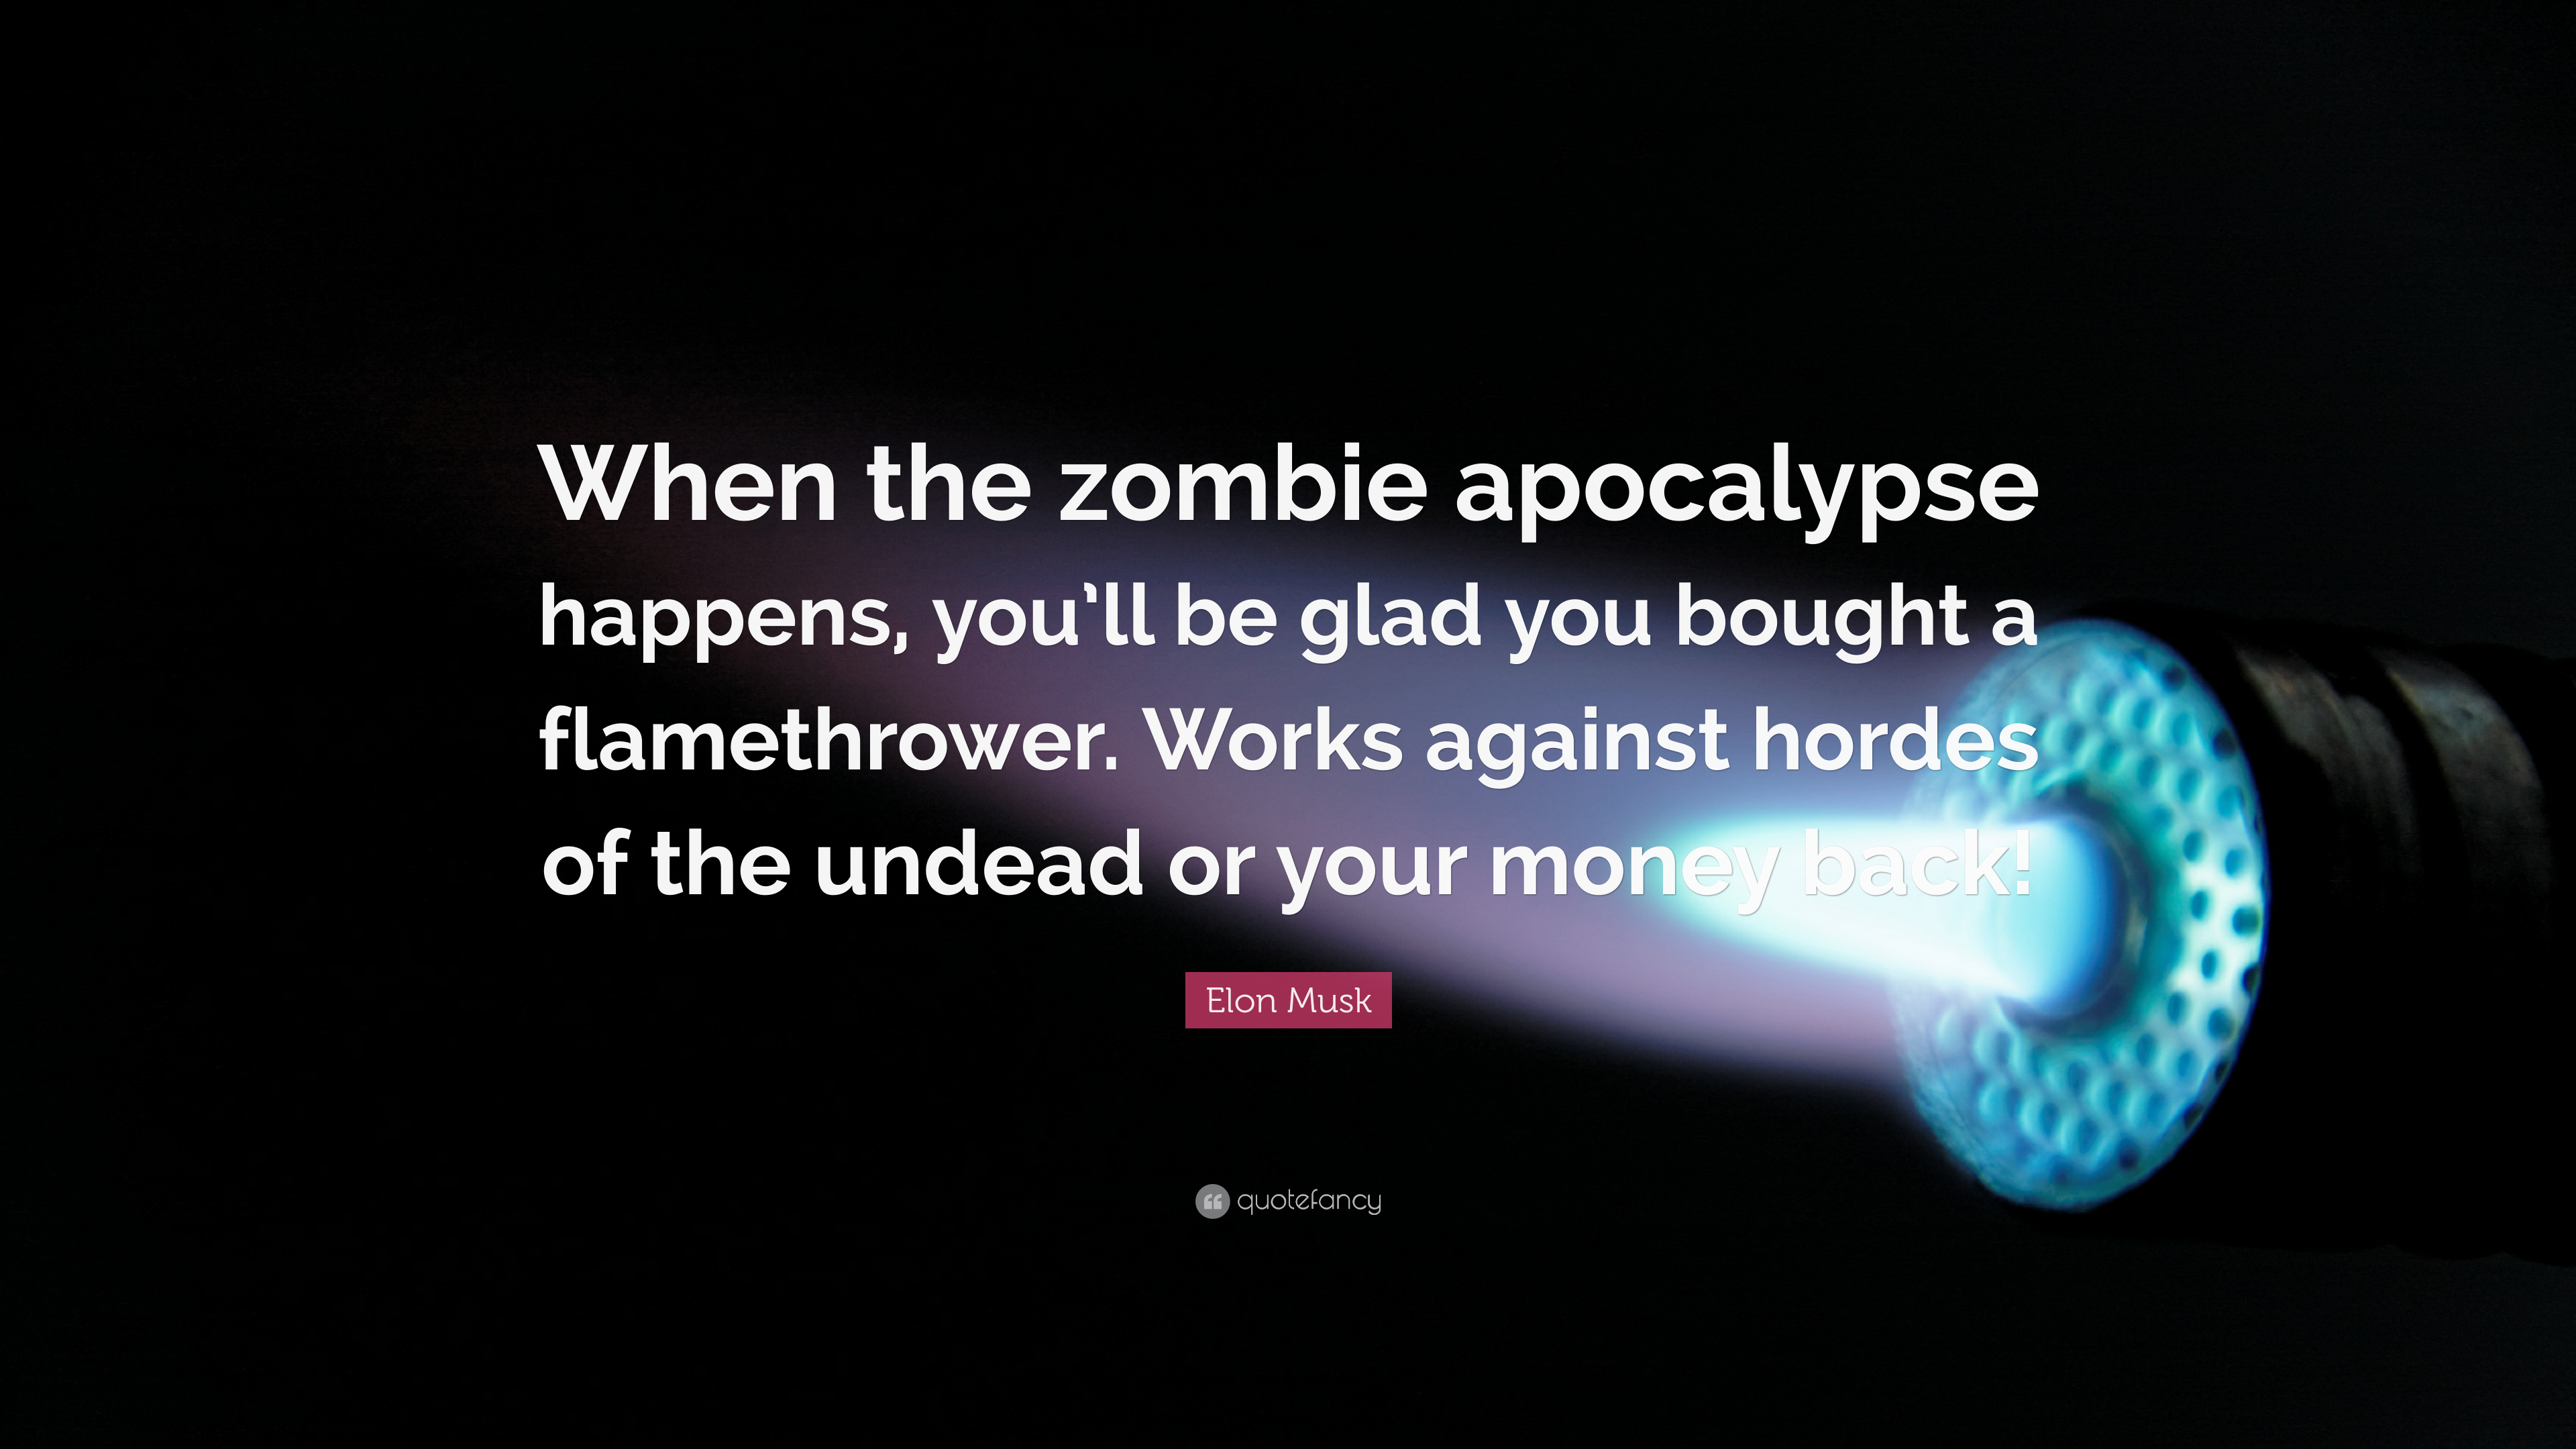 Elon Musk Quote When The Zombie Apocalypse Happens Youll Be Glad